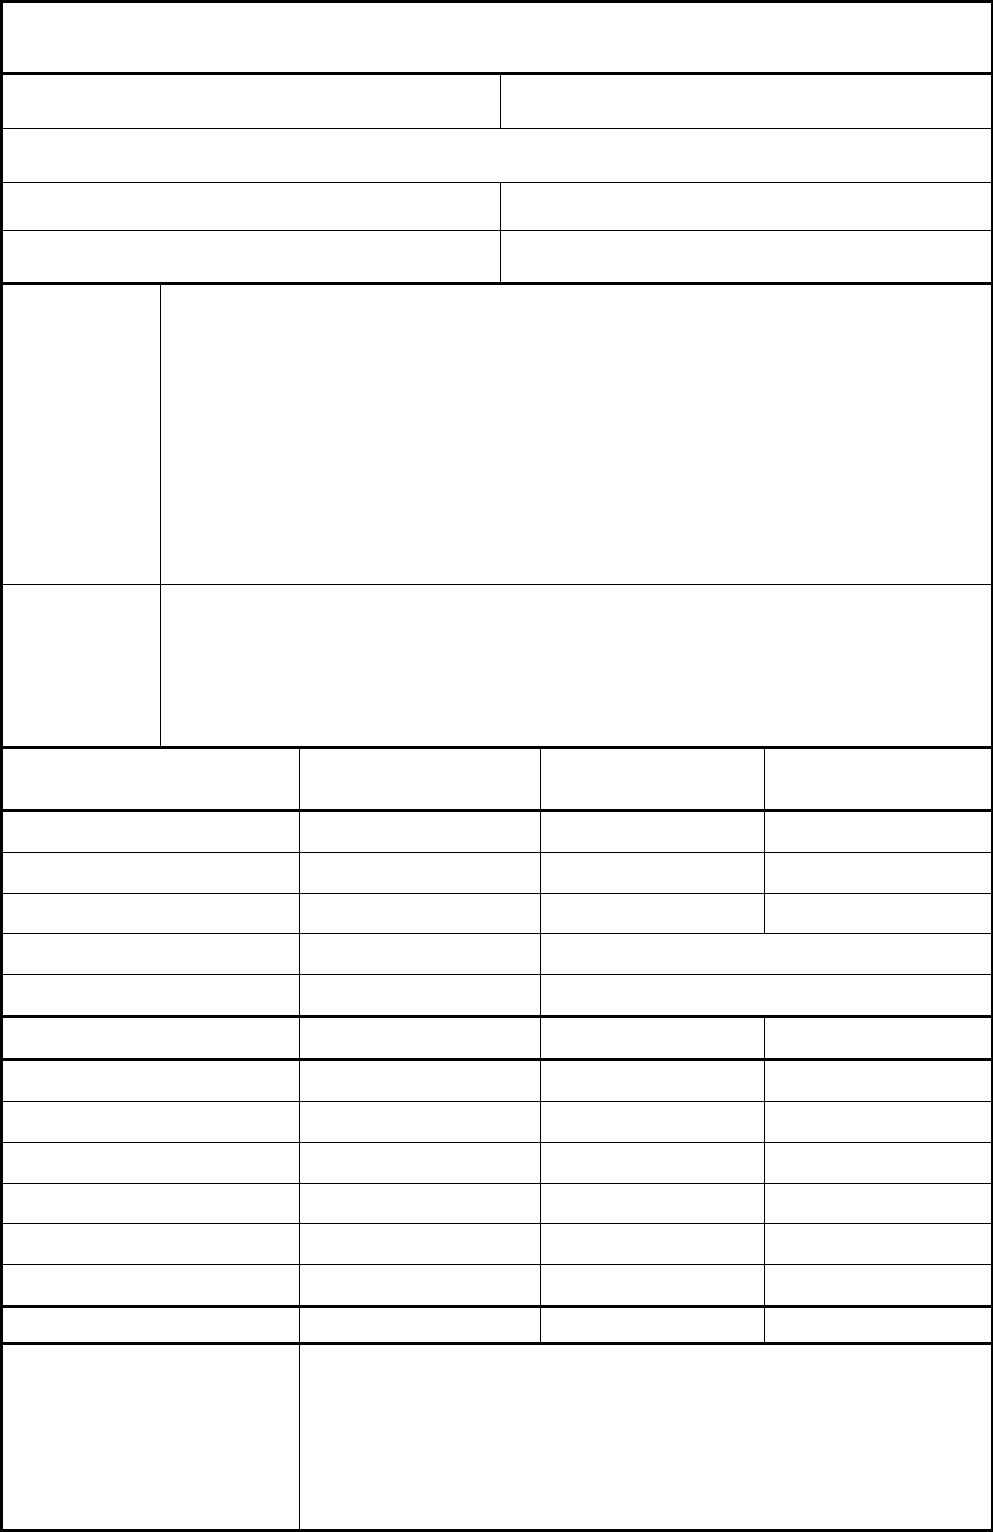 Brew Log Sheet